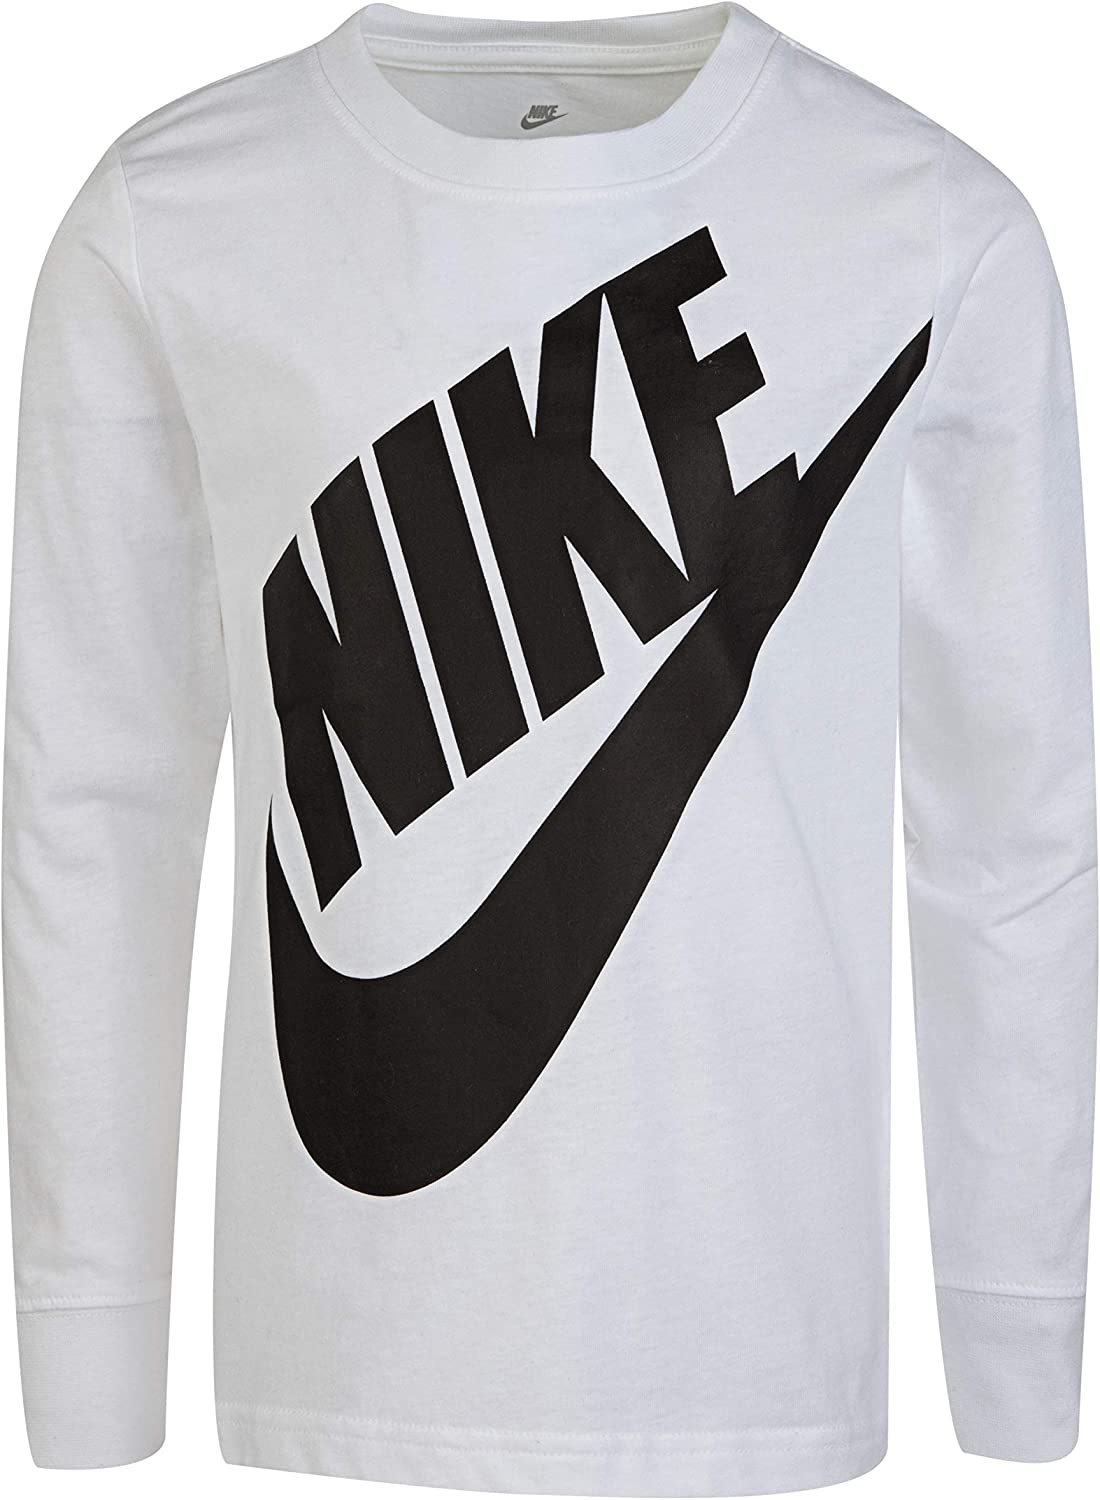 NIKE Childrens Apparel Boys Long Sleeve Sportswear Graphic T-Shirt